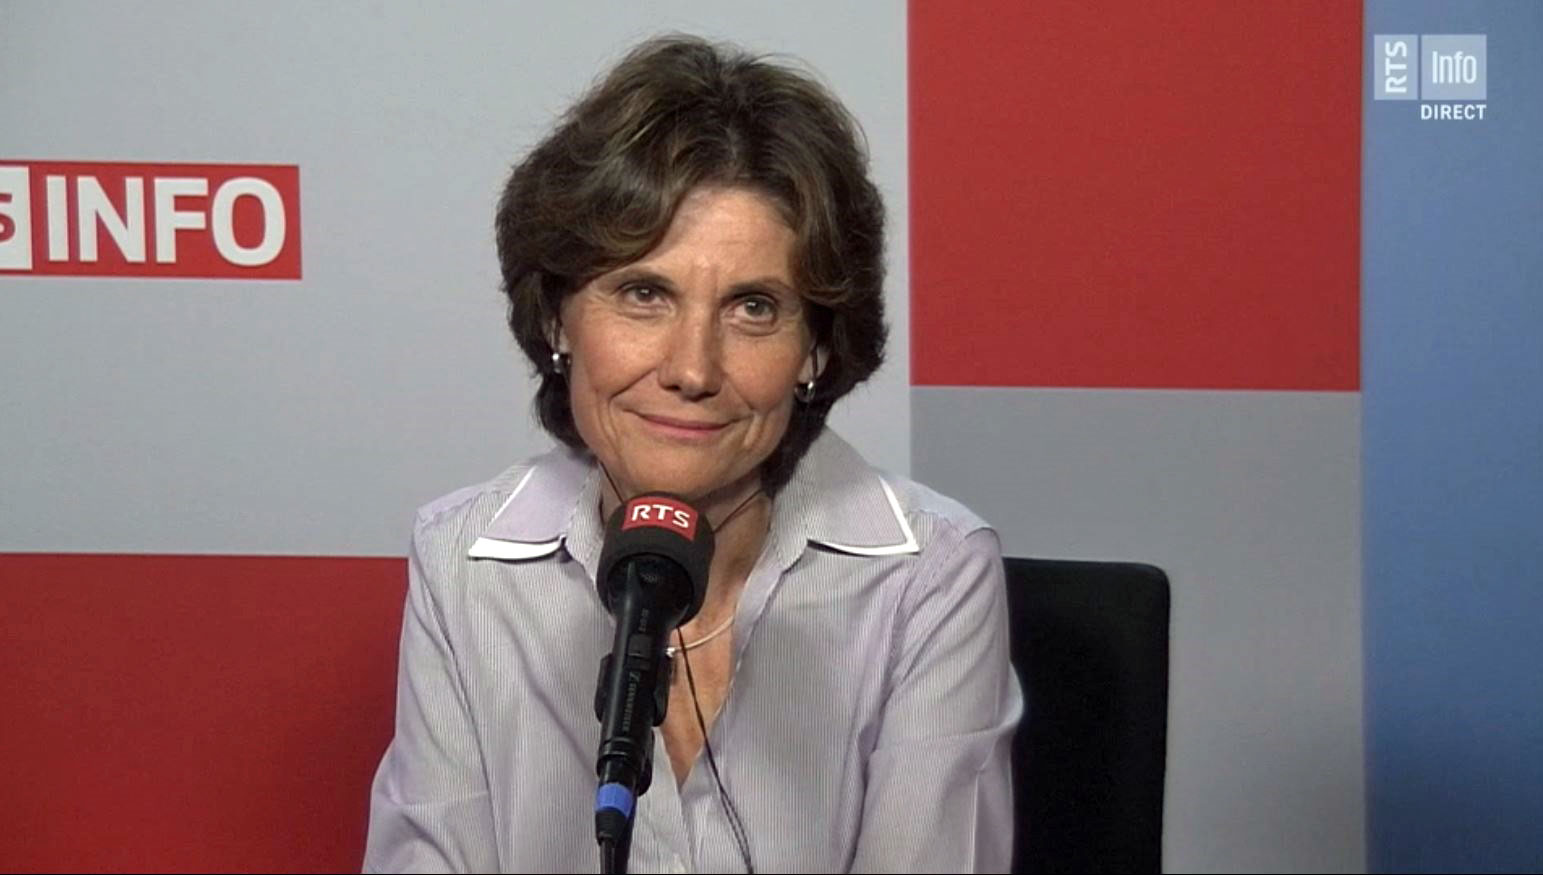 La cheffe du Département genevois de l'Instruction publique, Anne Emery-Torracinta.